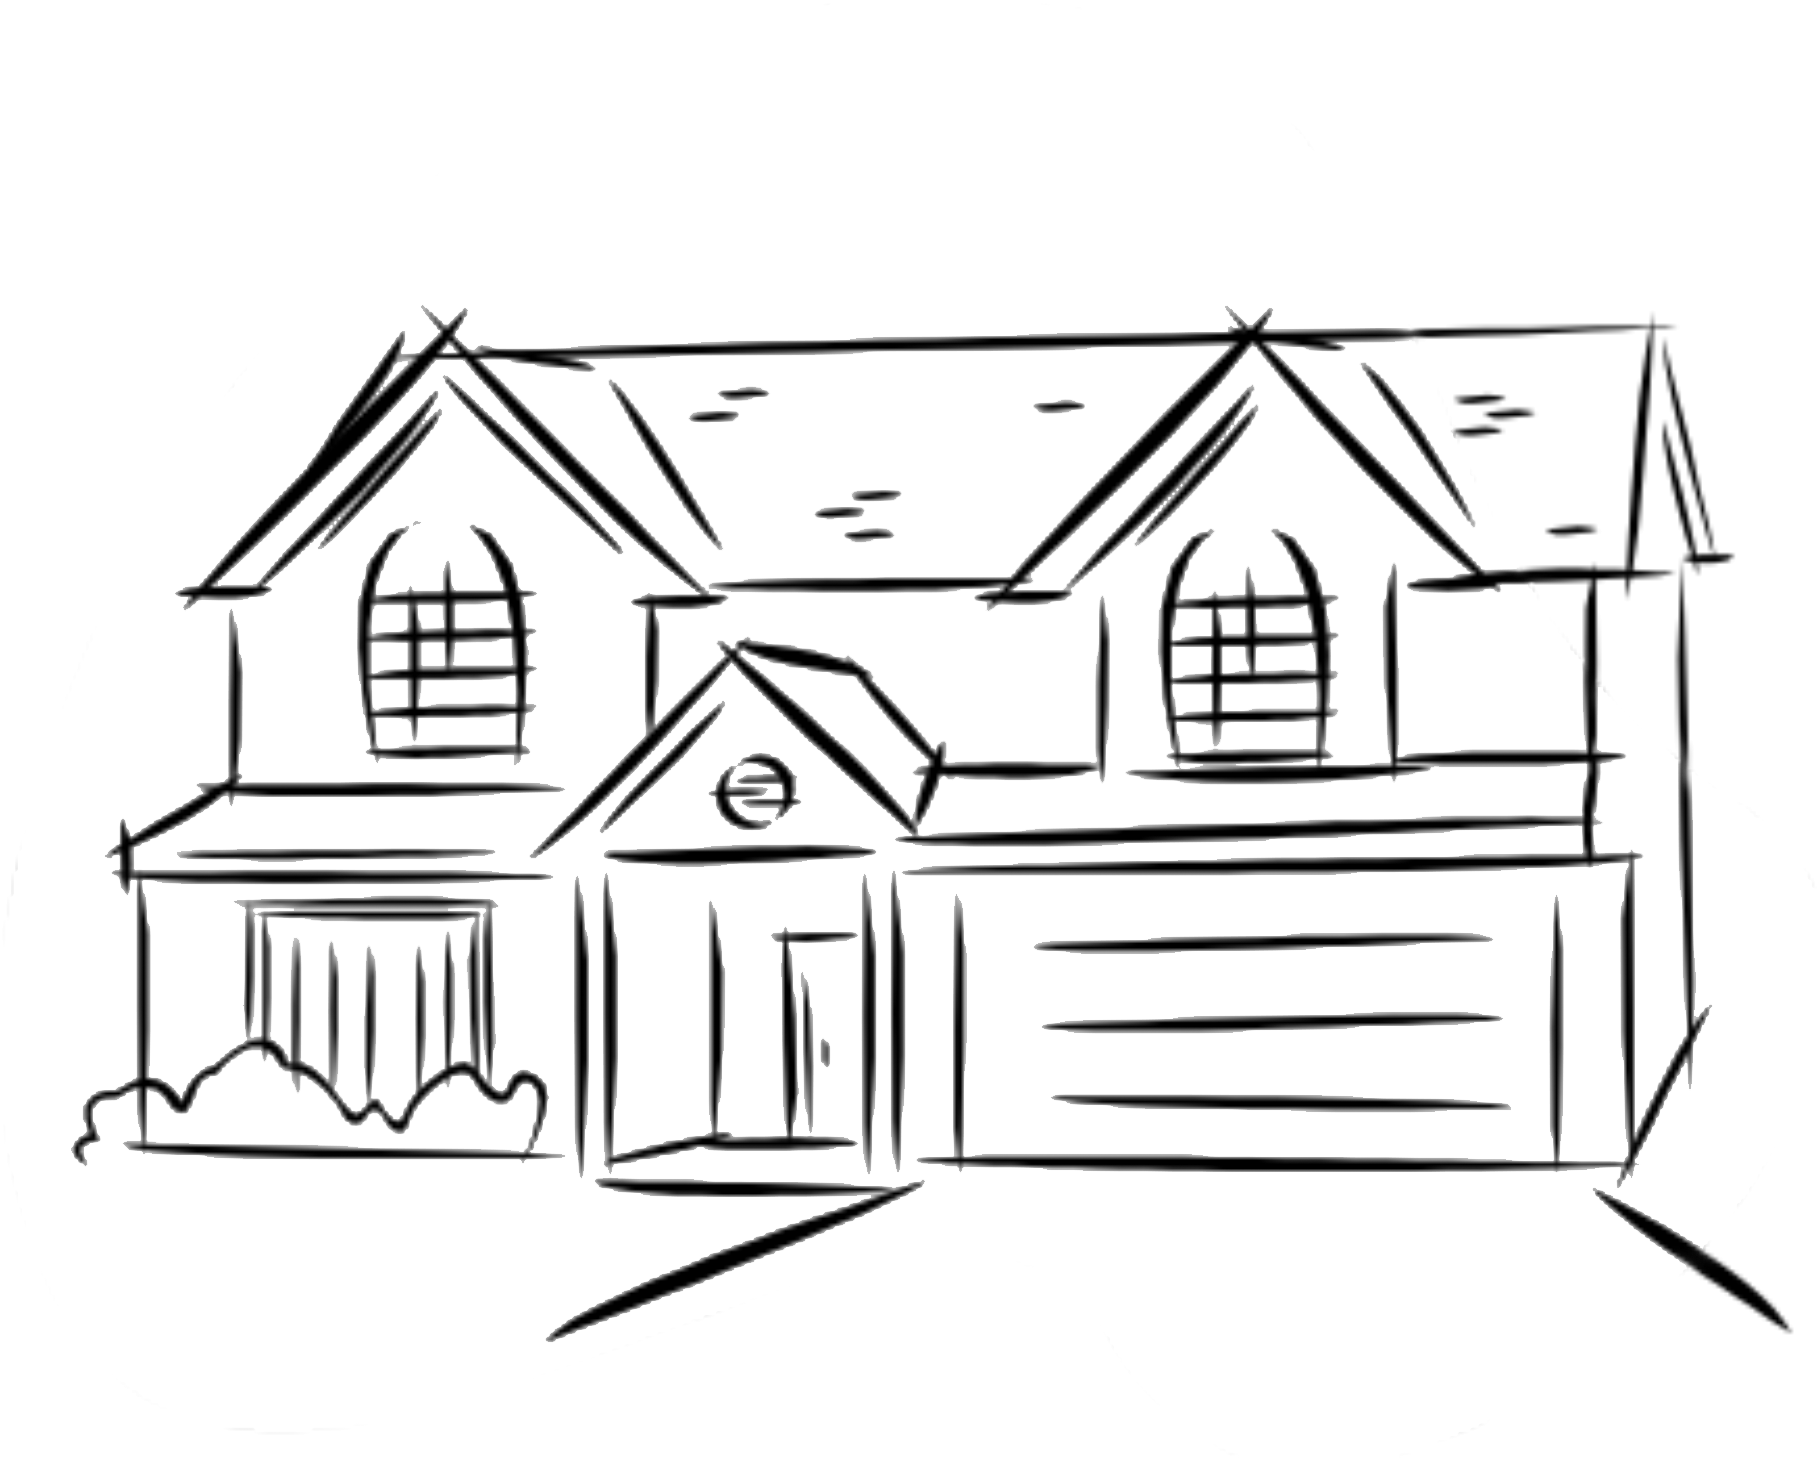 png black and white download Drawing sticks hut. Two story house at